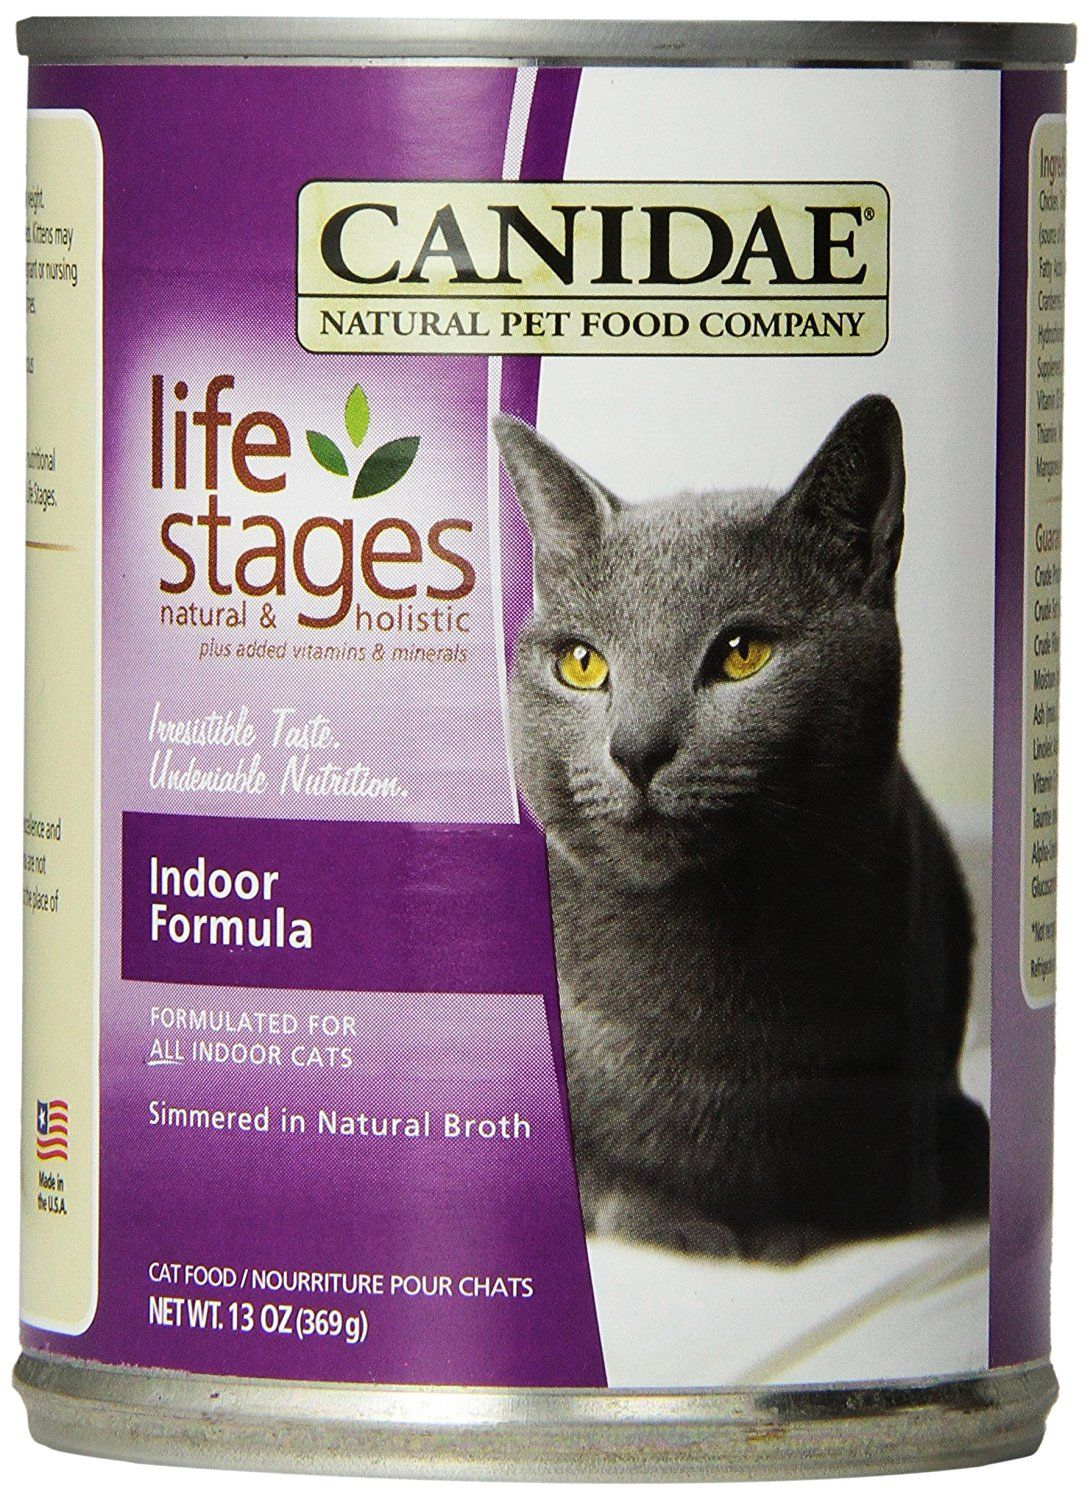 Canidae Canned Cat Food For Senior And Overweight Cats Platinum Diet Formula Pack Of 12 13 Ounce Cans Learn More By Visiting The Image Li Canned Cat Food